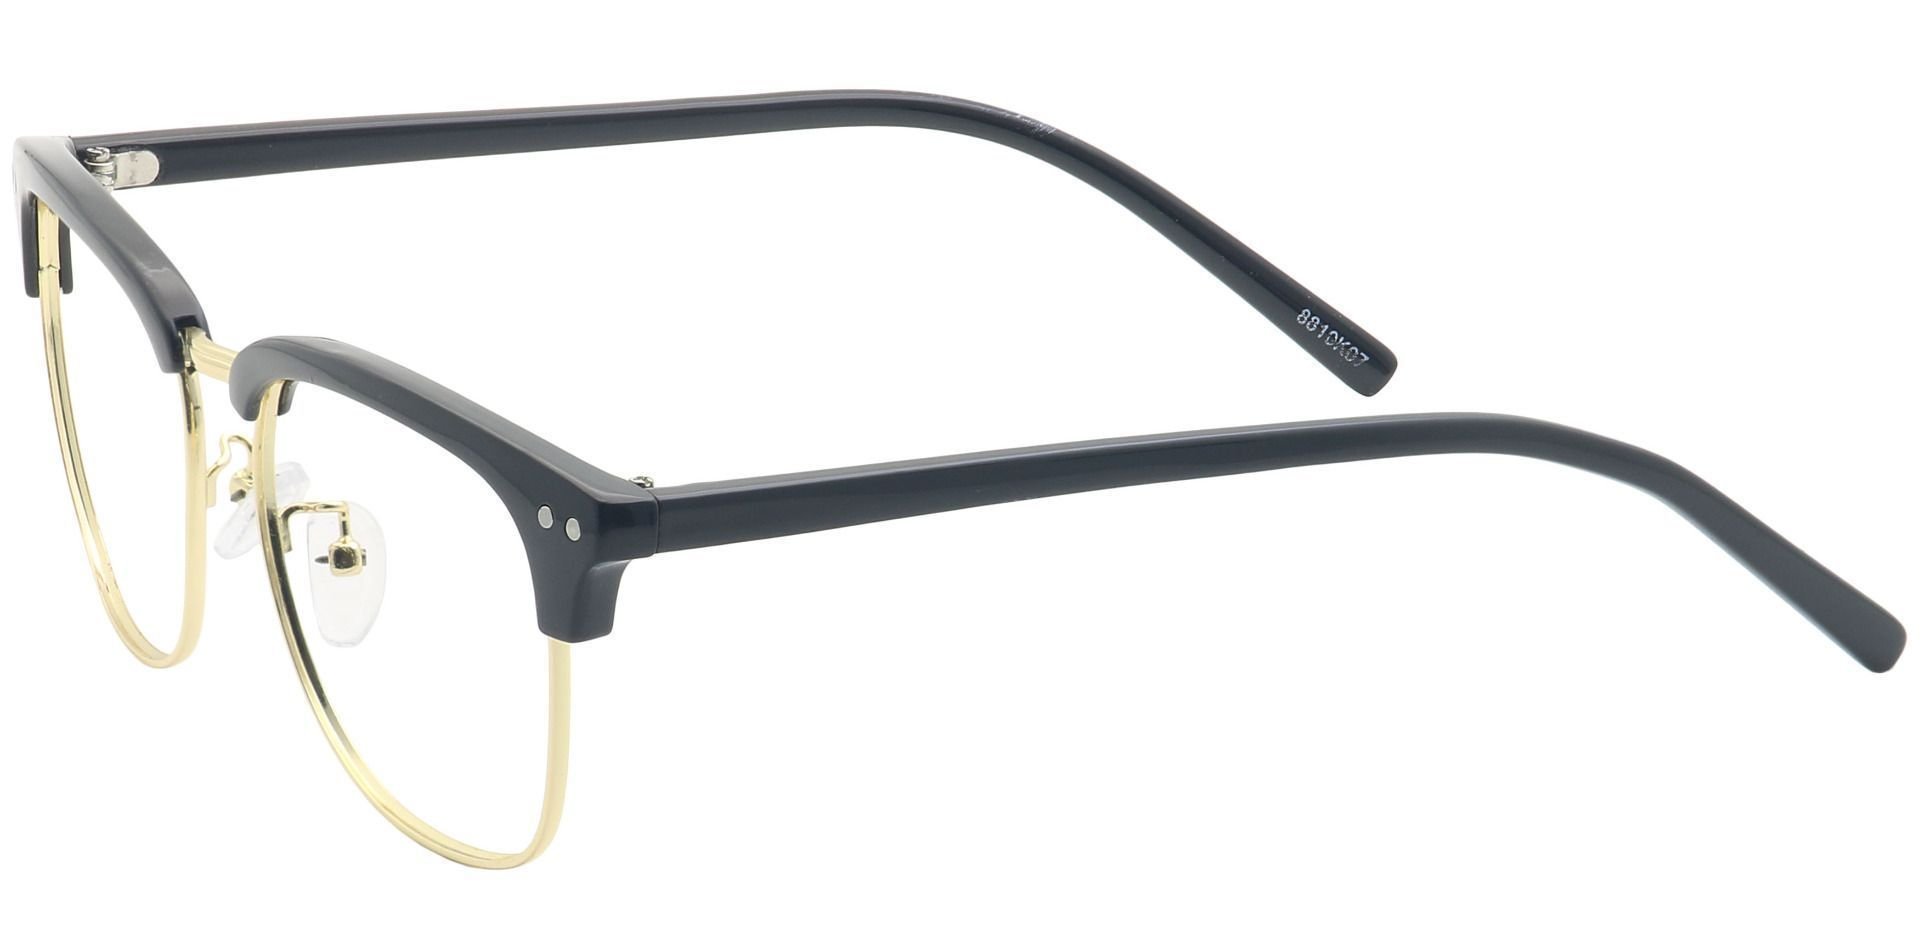 Kell Browline Lined Bifocal Glasses - Black